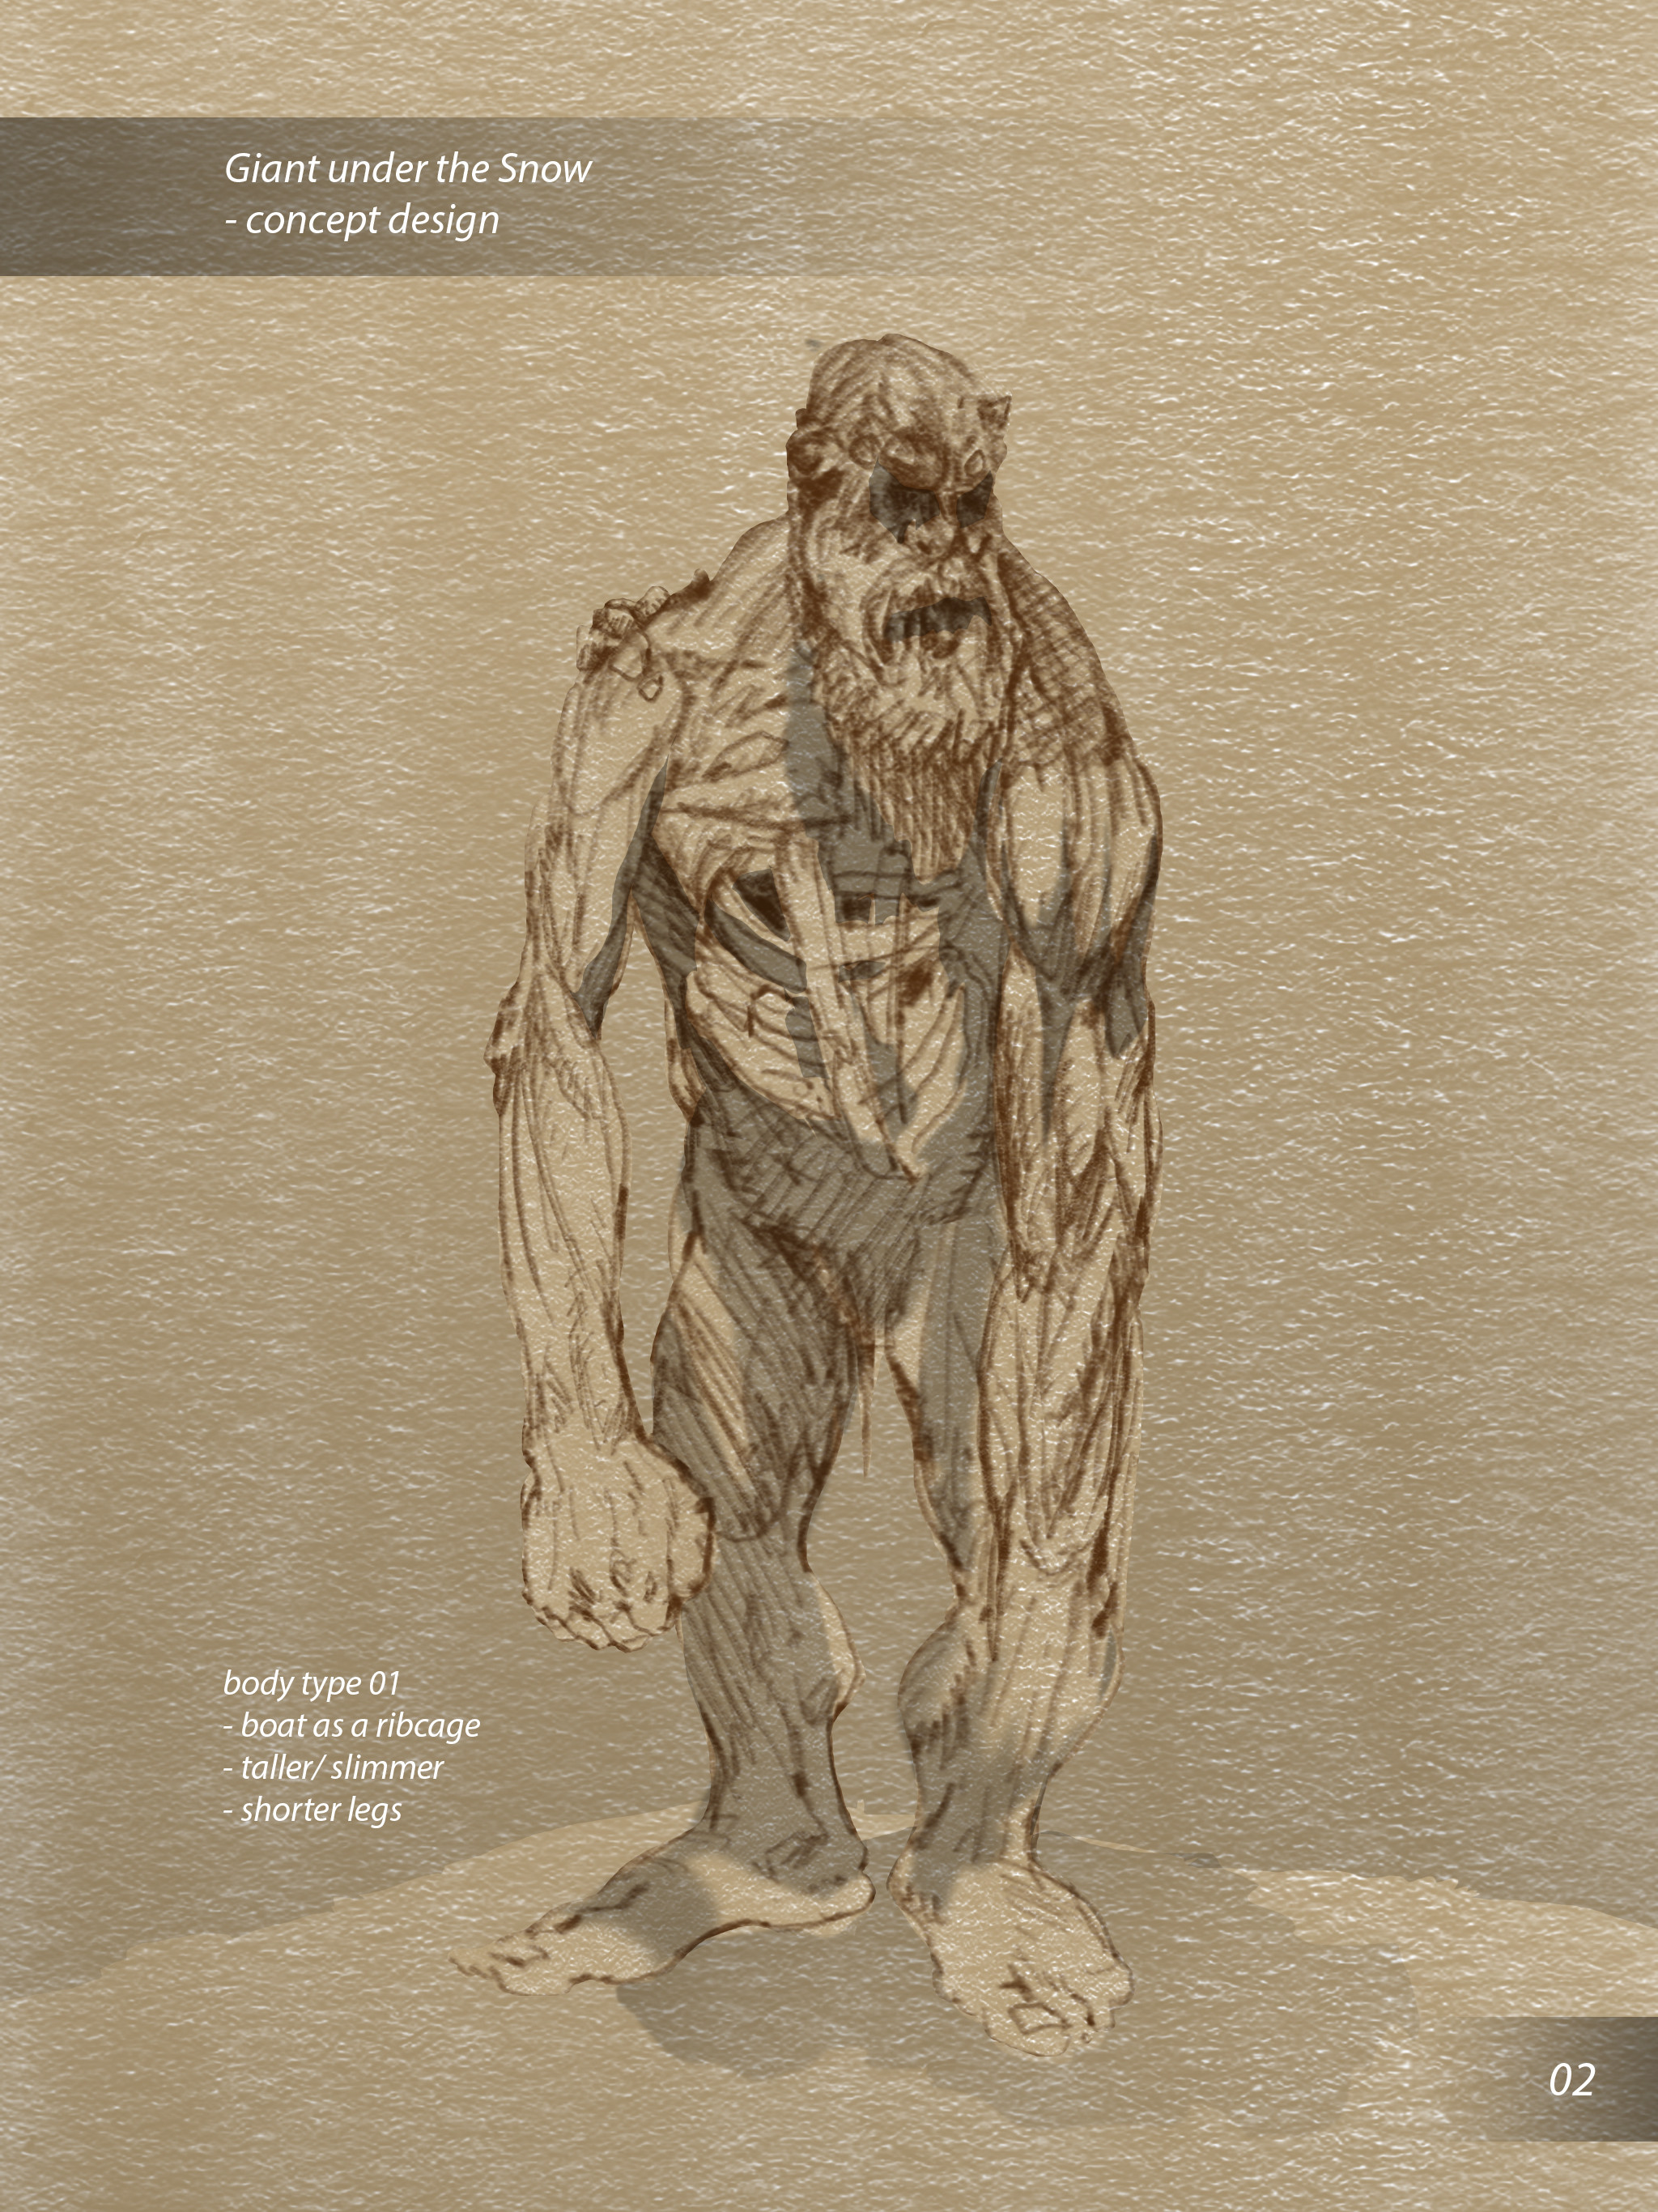 Early sketches of the giant development